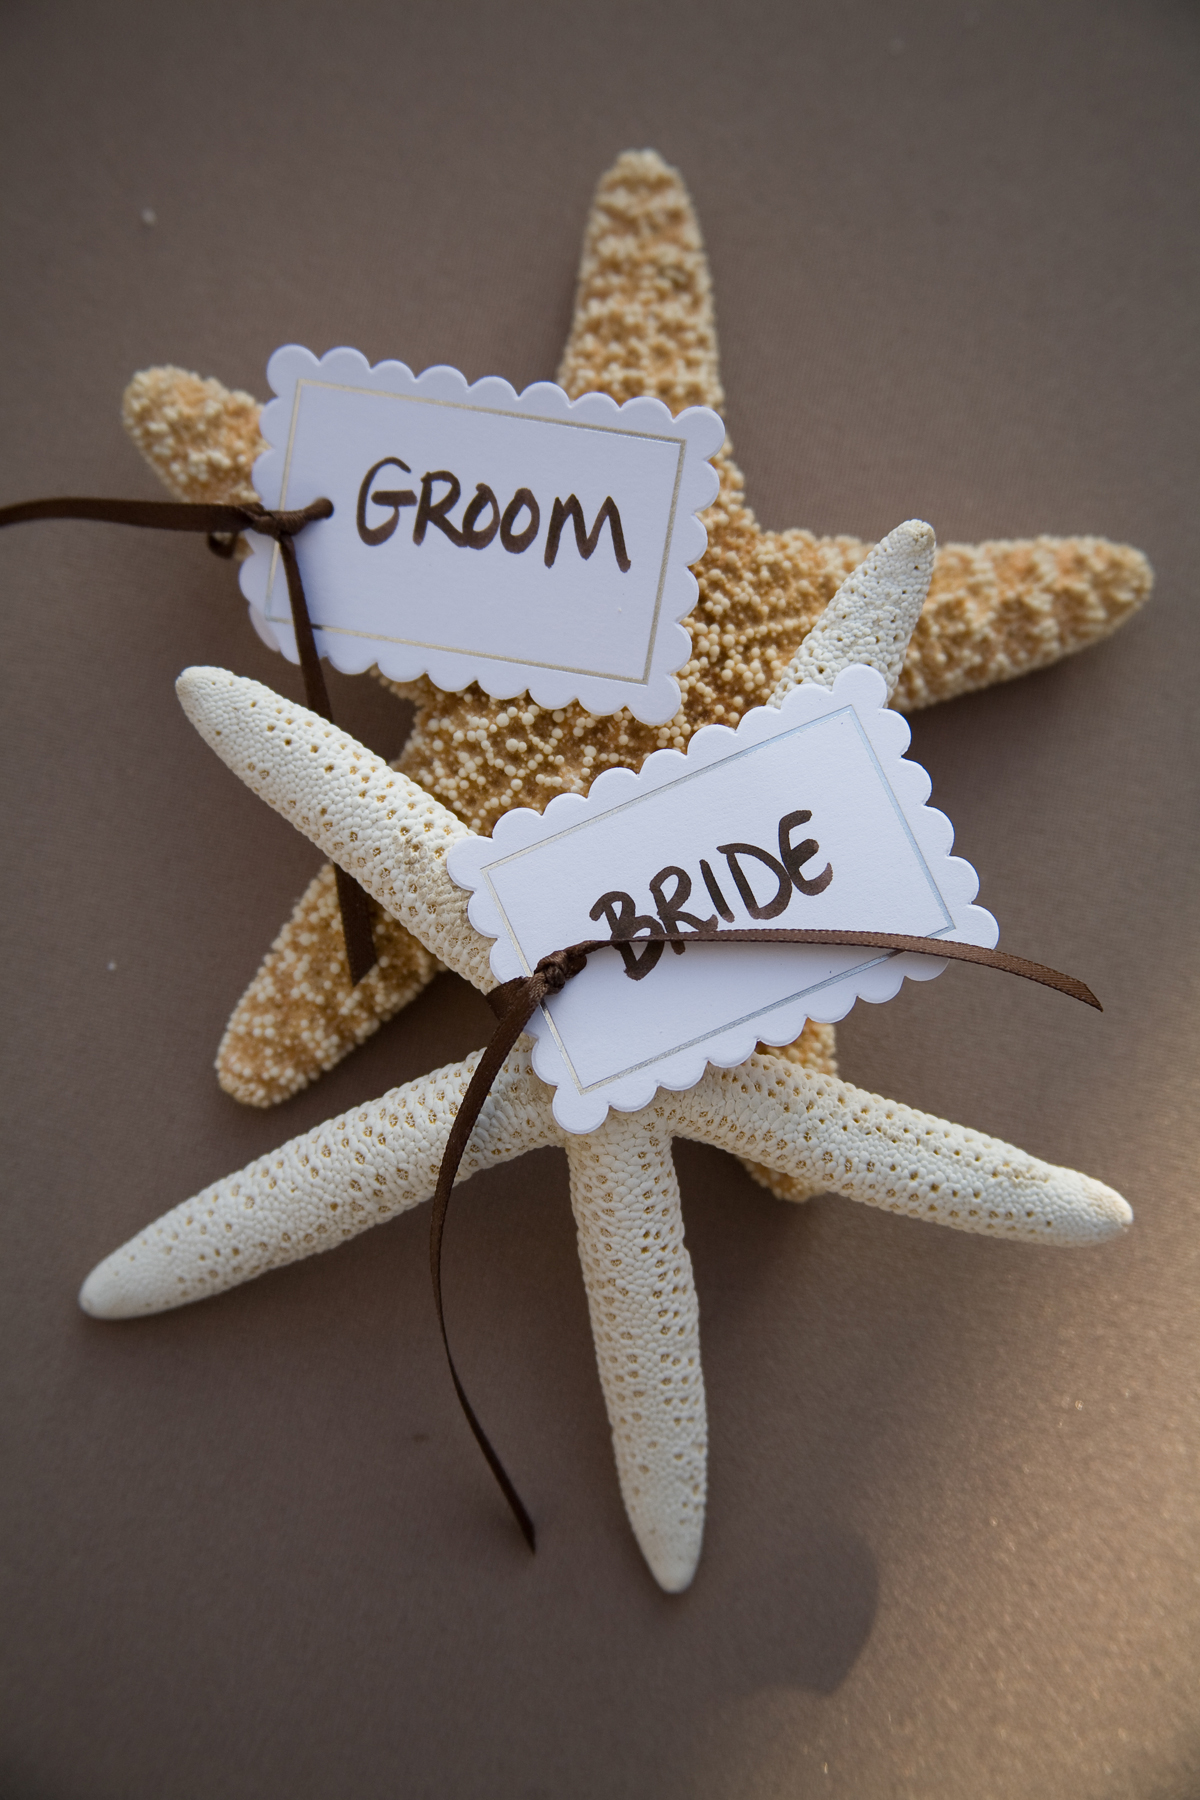 40 Diy Beach Wedding Ideas Perfect For A Destination